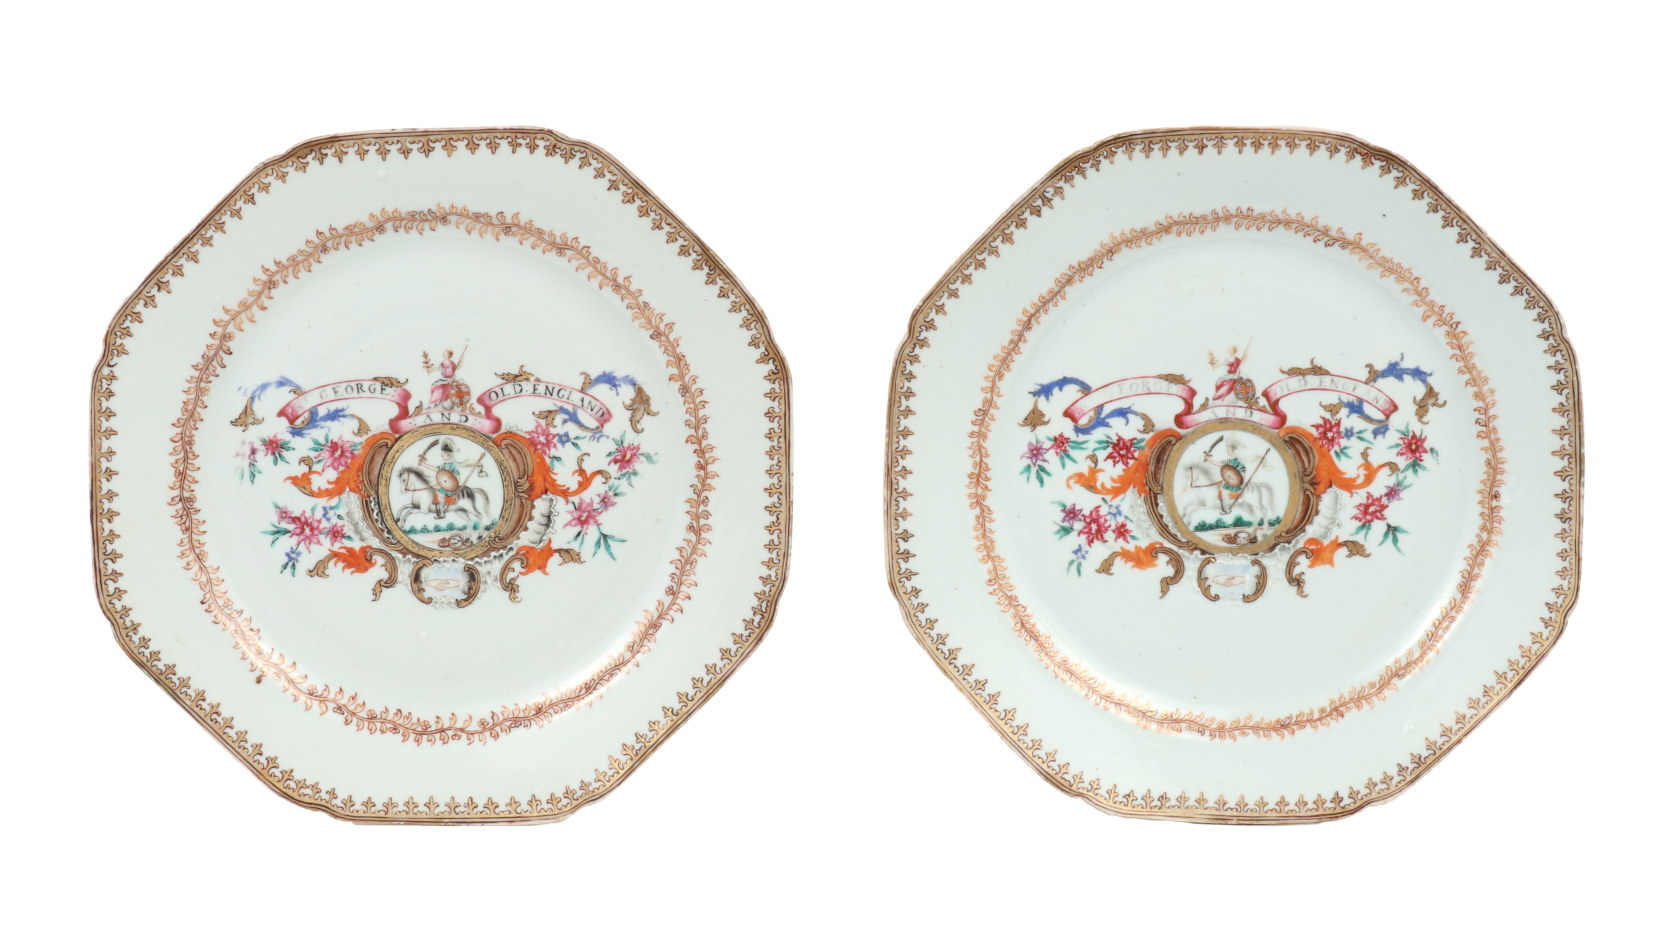 Pair of Chinese Export Armorial Plates, c. 1760